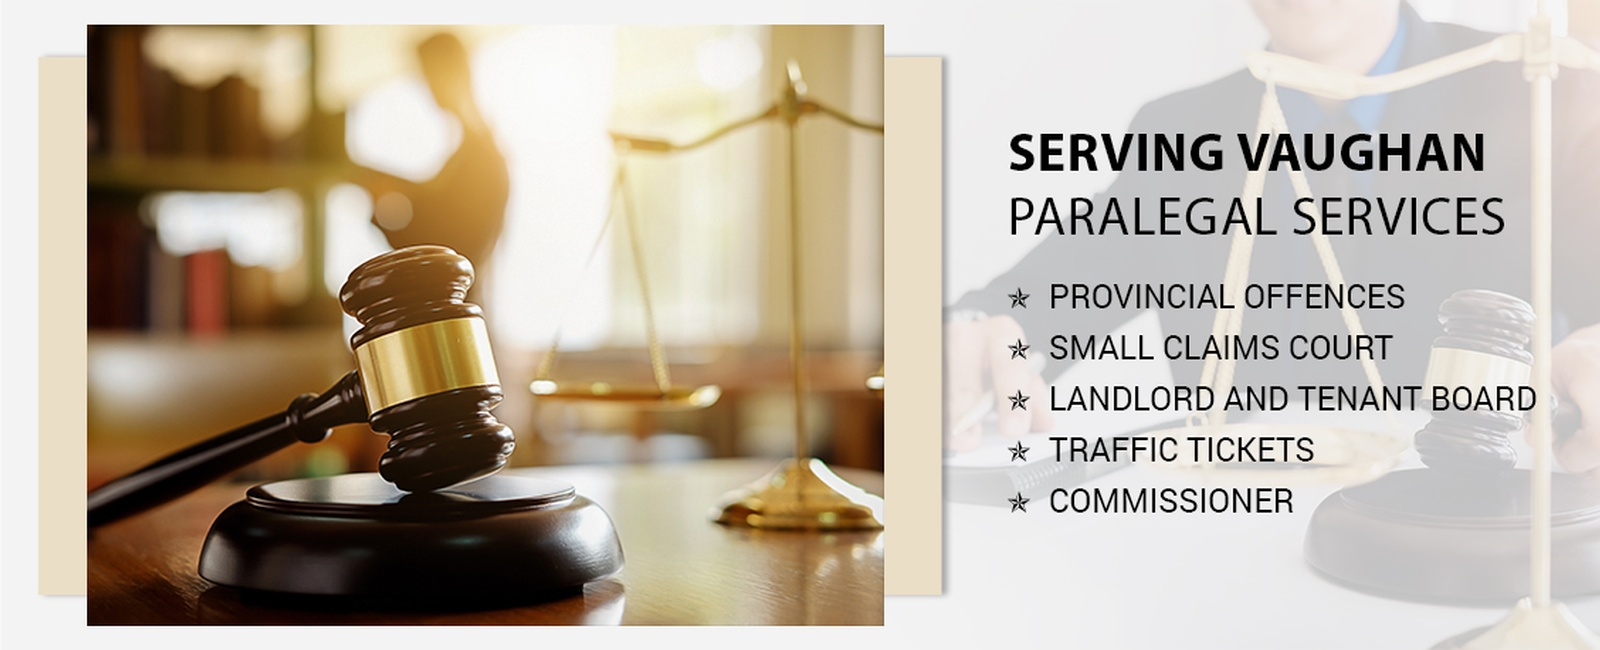 Paralegal services in Vaughan